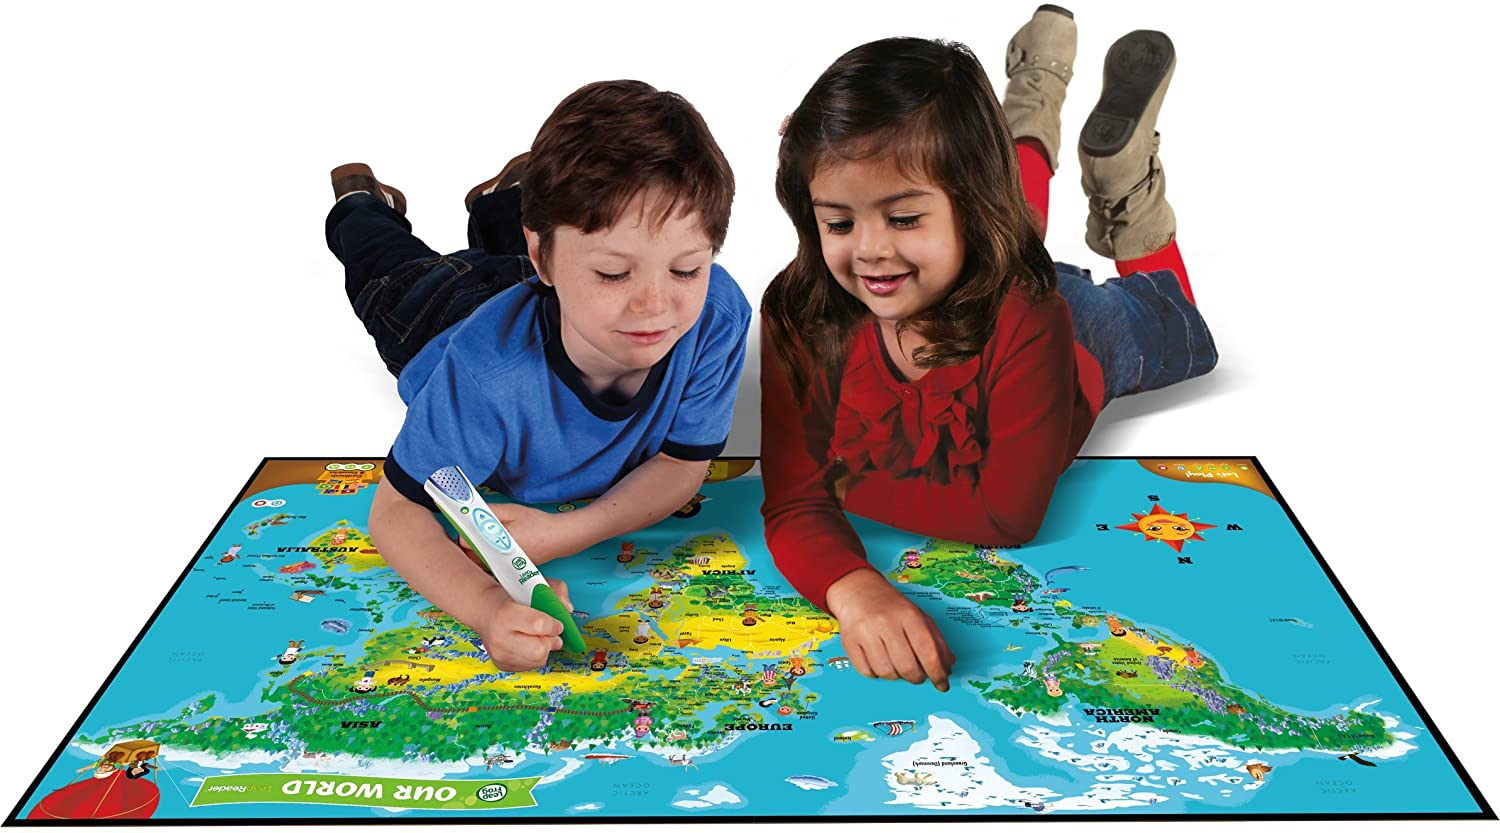 Leapfrog tag world map mapa educativo multicolor amazon leapfrog tag world map mapa educativo multicolor amazon oficina y papelera gumiabroncs Image collections